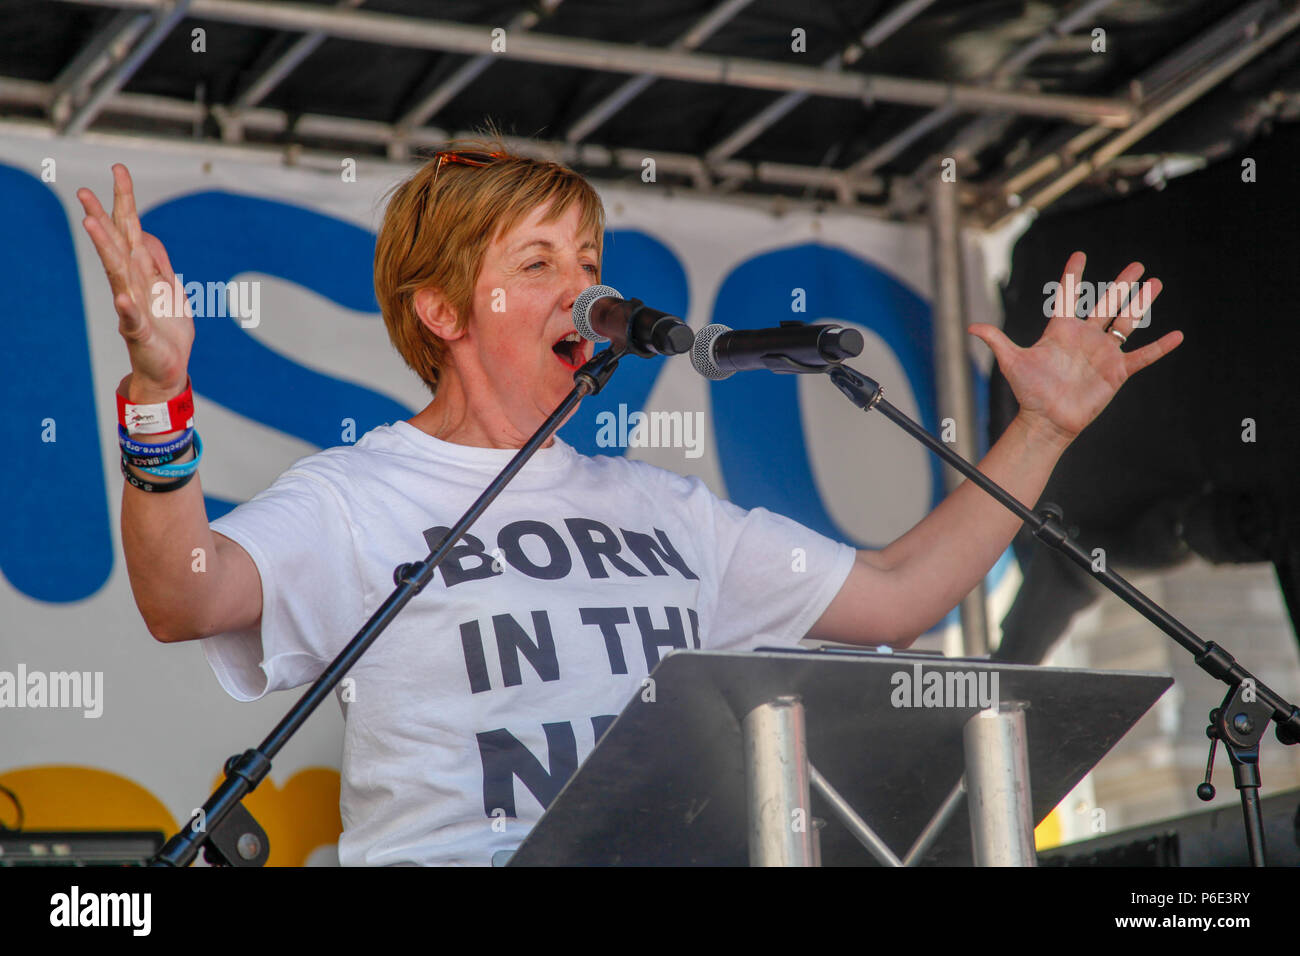 London, UK, 30 June 2018. Actress Julie Hesmondhalgh at the NHS's 70th Birthday March Credit: Alex Cavendish/Alamy Live News - Stock Image